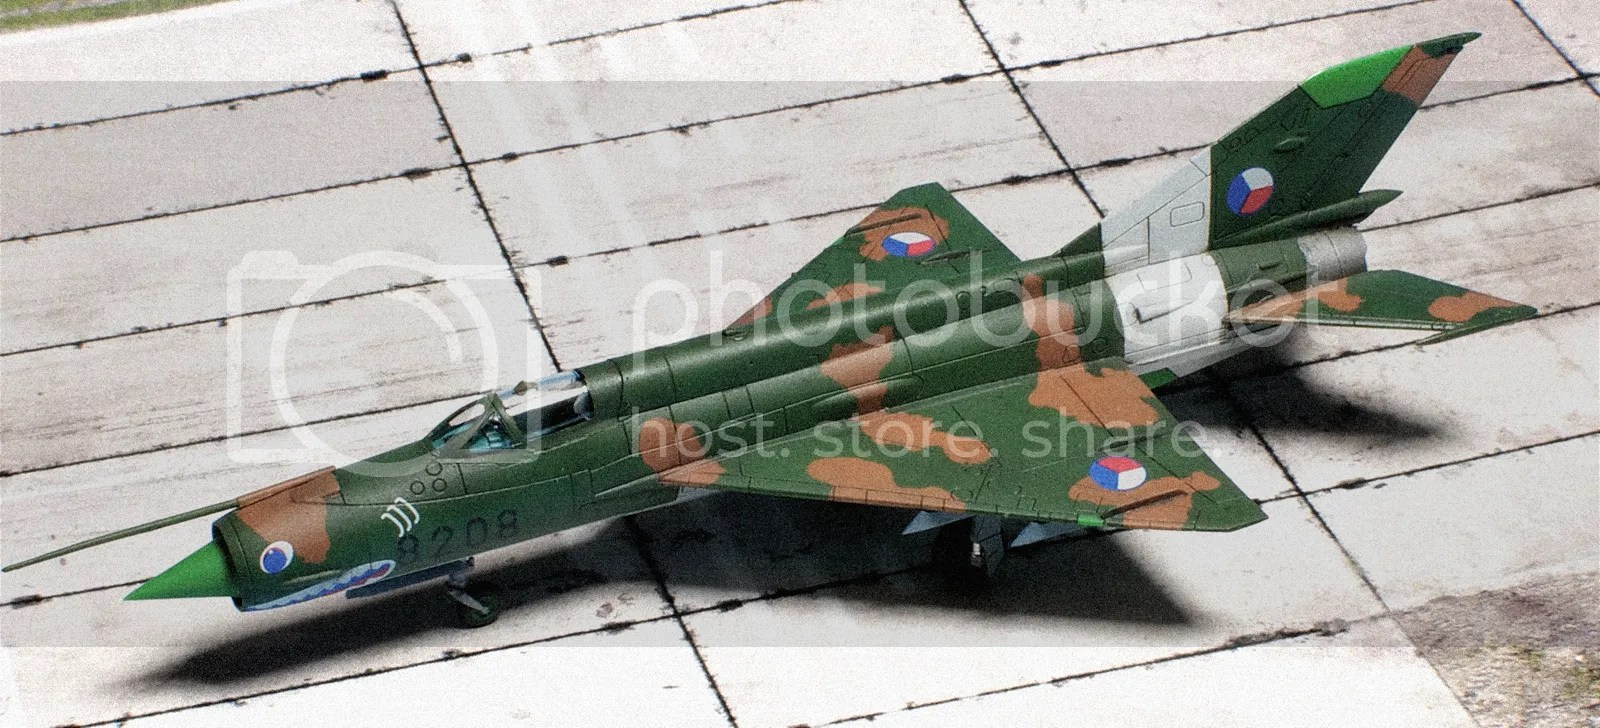 https://i1.wp.com/i780.photobucket.com/albums/yy86/doogsatx/Aircraft/Eduard%20144th%20MiG-21%20Dual%20Combo/file-50.jpg